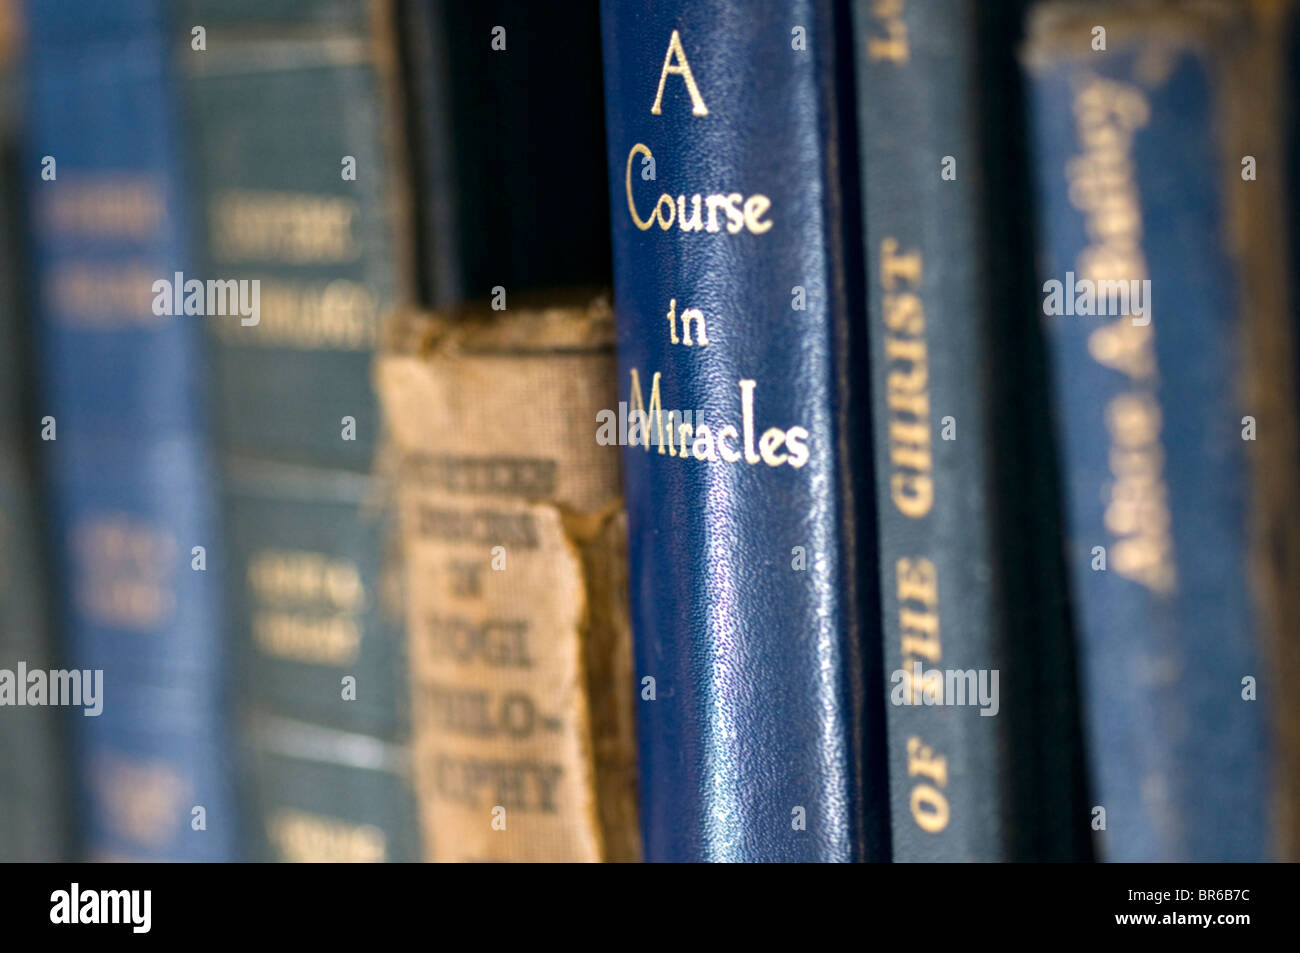 Esoteric,Religious books in bookshelf with focus on A Course in Miracles - Stock Image